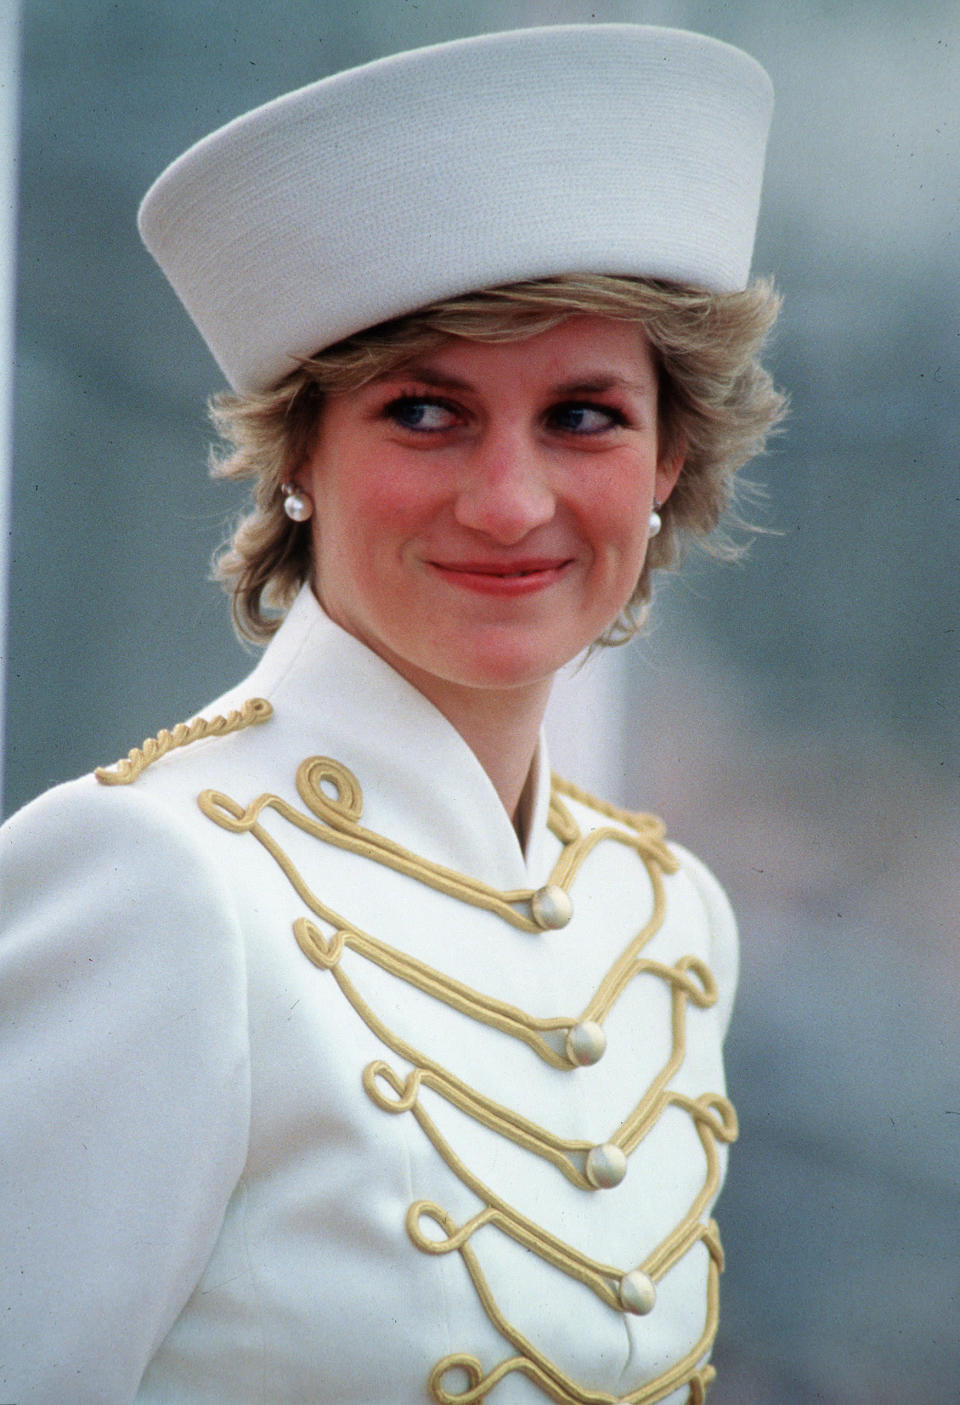 <p>Back in 1987, Princess Diana attended the Sovereigns Parade at the Royal Military Academy in full uniform, her hair tucked neatly beneath a white hat.<br><em>[Photo: PA]</em> </p>